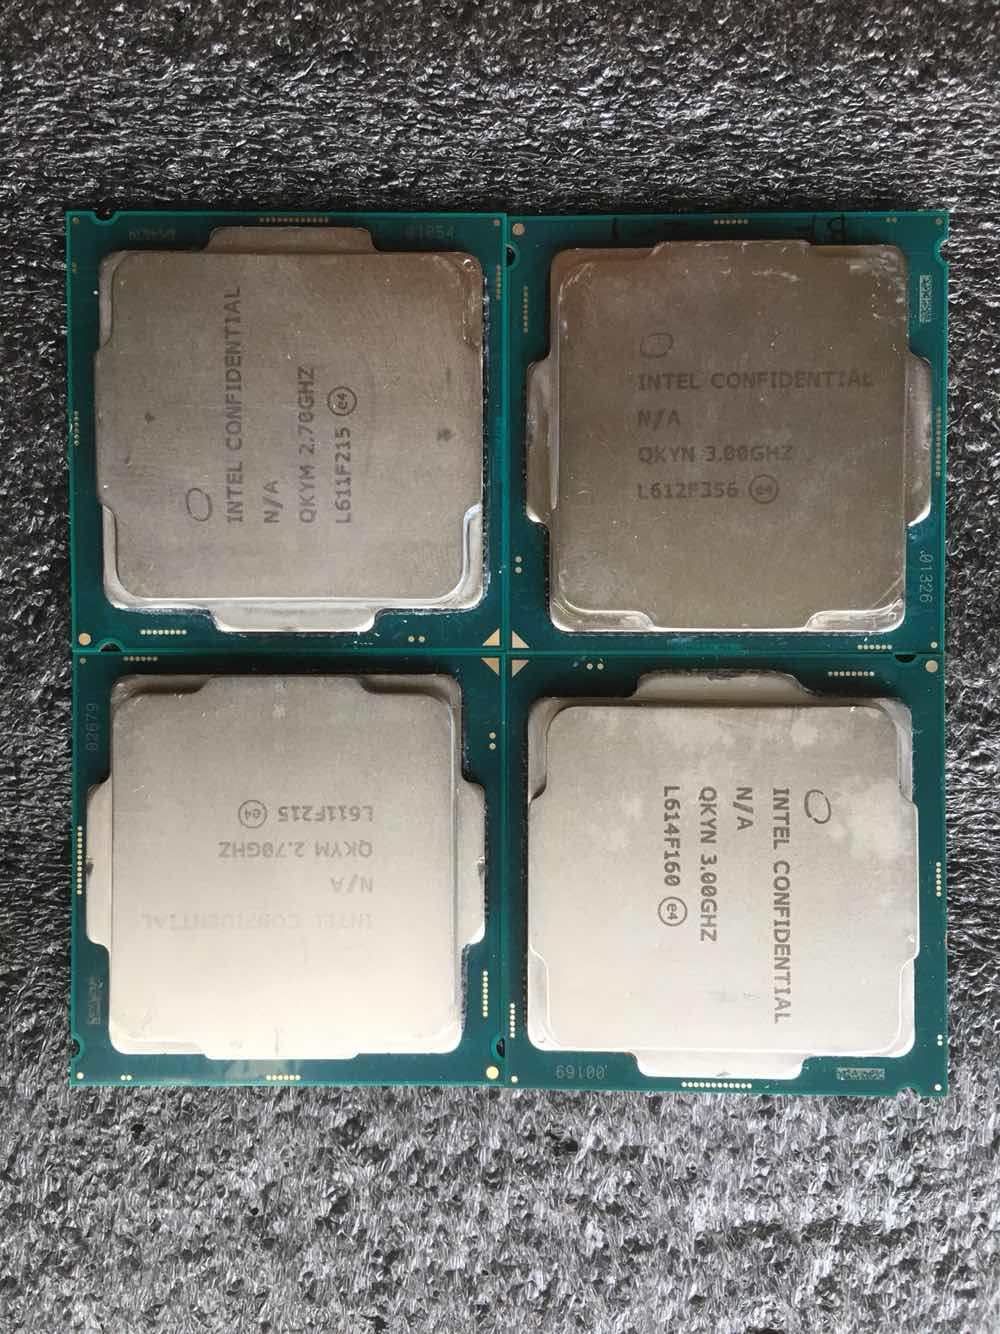 Seven i5/7400es/I7 7700t 7700k esqkyp stable version CPU chip